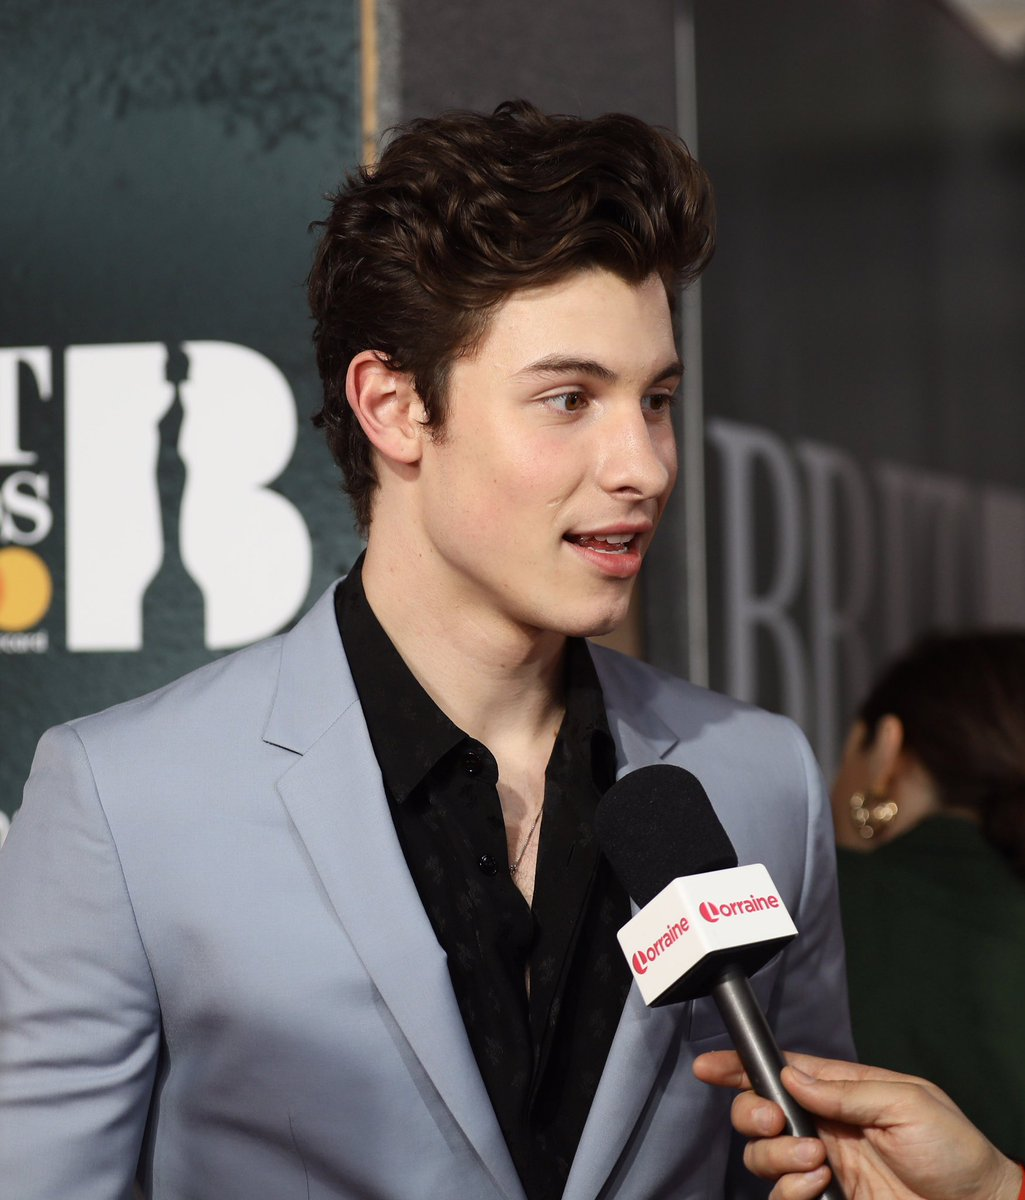 Shawn being interviewed on the red carpet at the #BRITs<br>http://pic.twitter.com/oxq1EpJxuI